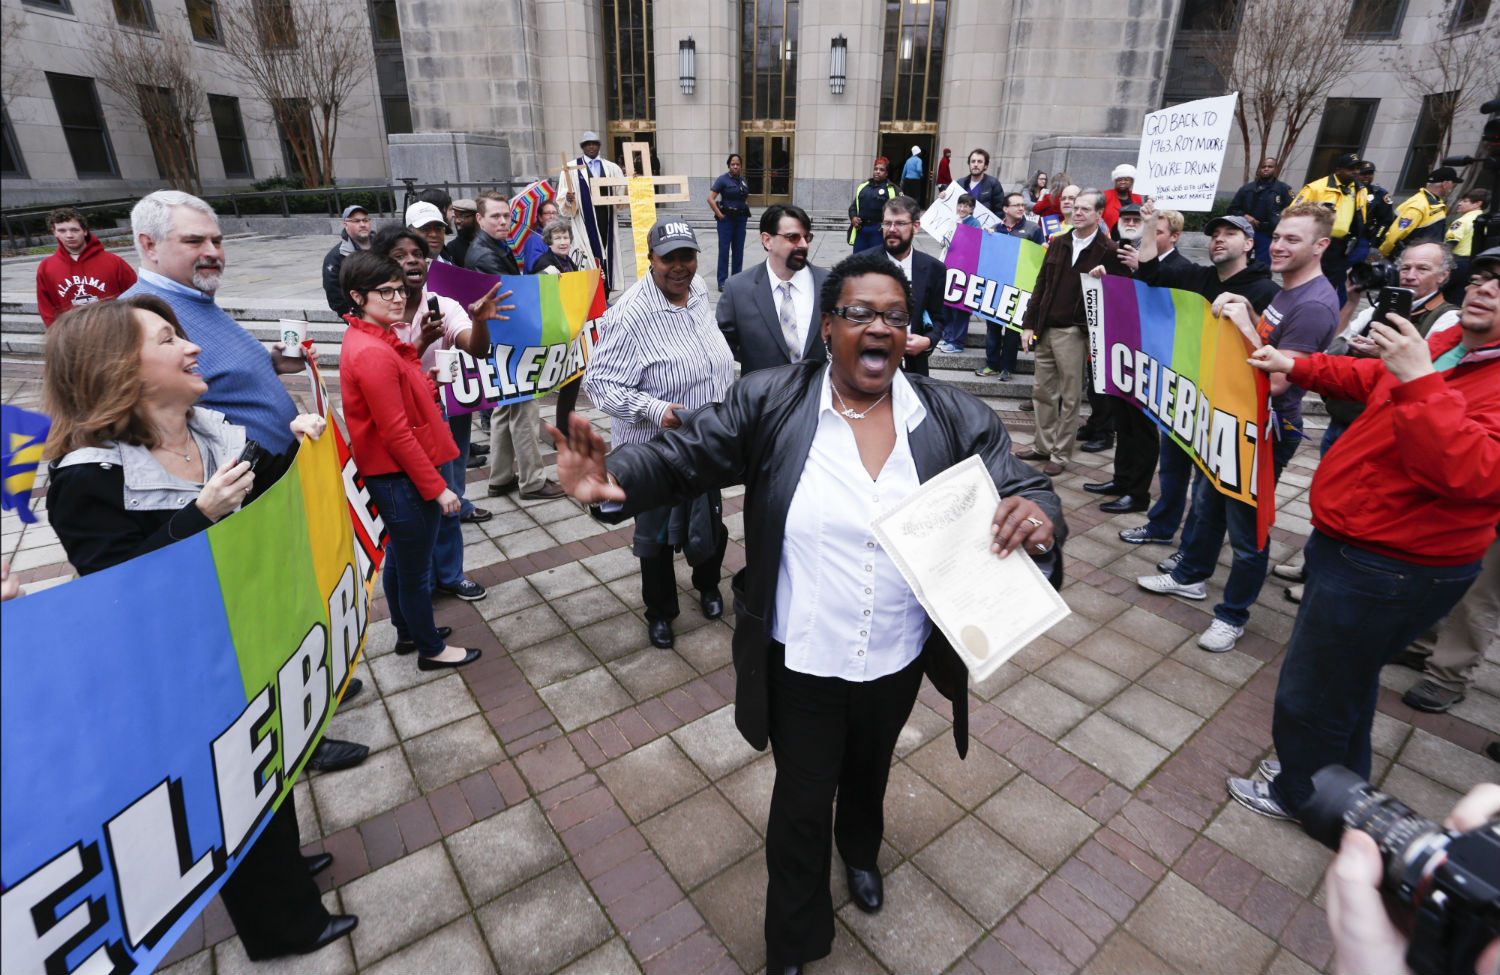 pAlabama-gay-marriage-celebration-outside-courthousep